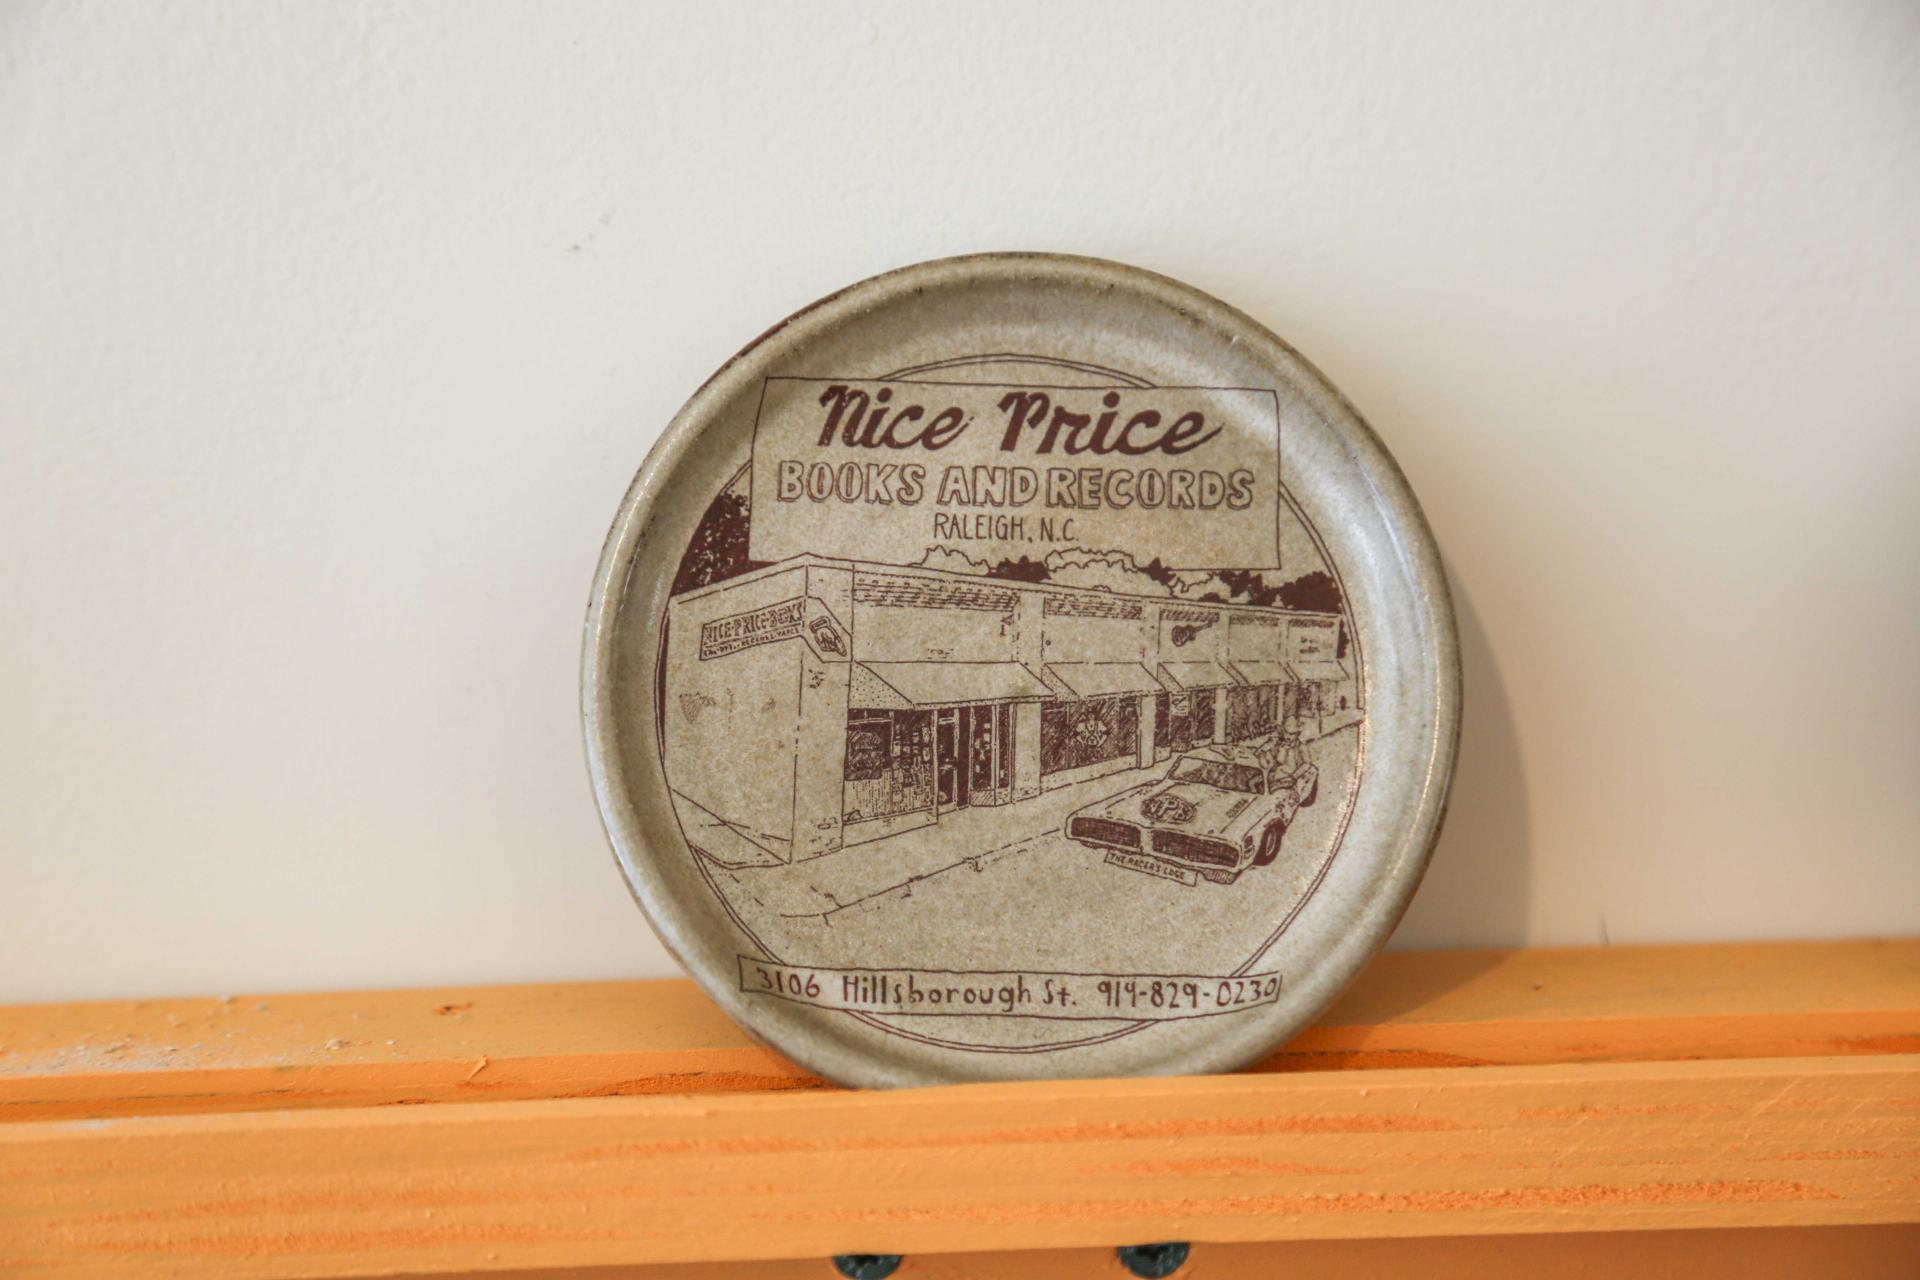 Pictured here: a clay coaster depicting a stylized version of Nice Price Books & Records' storefront